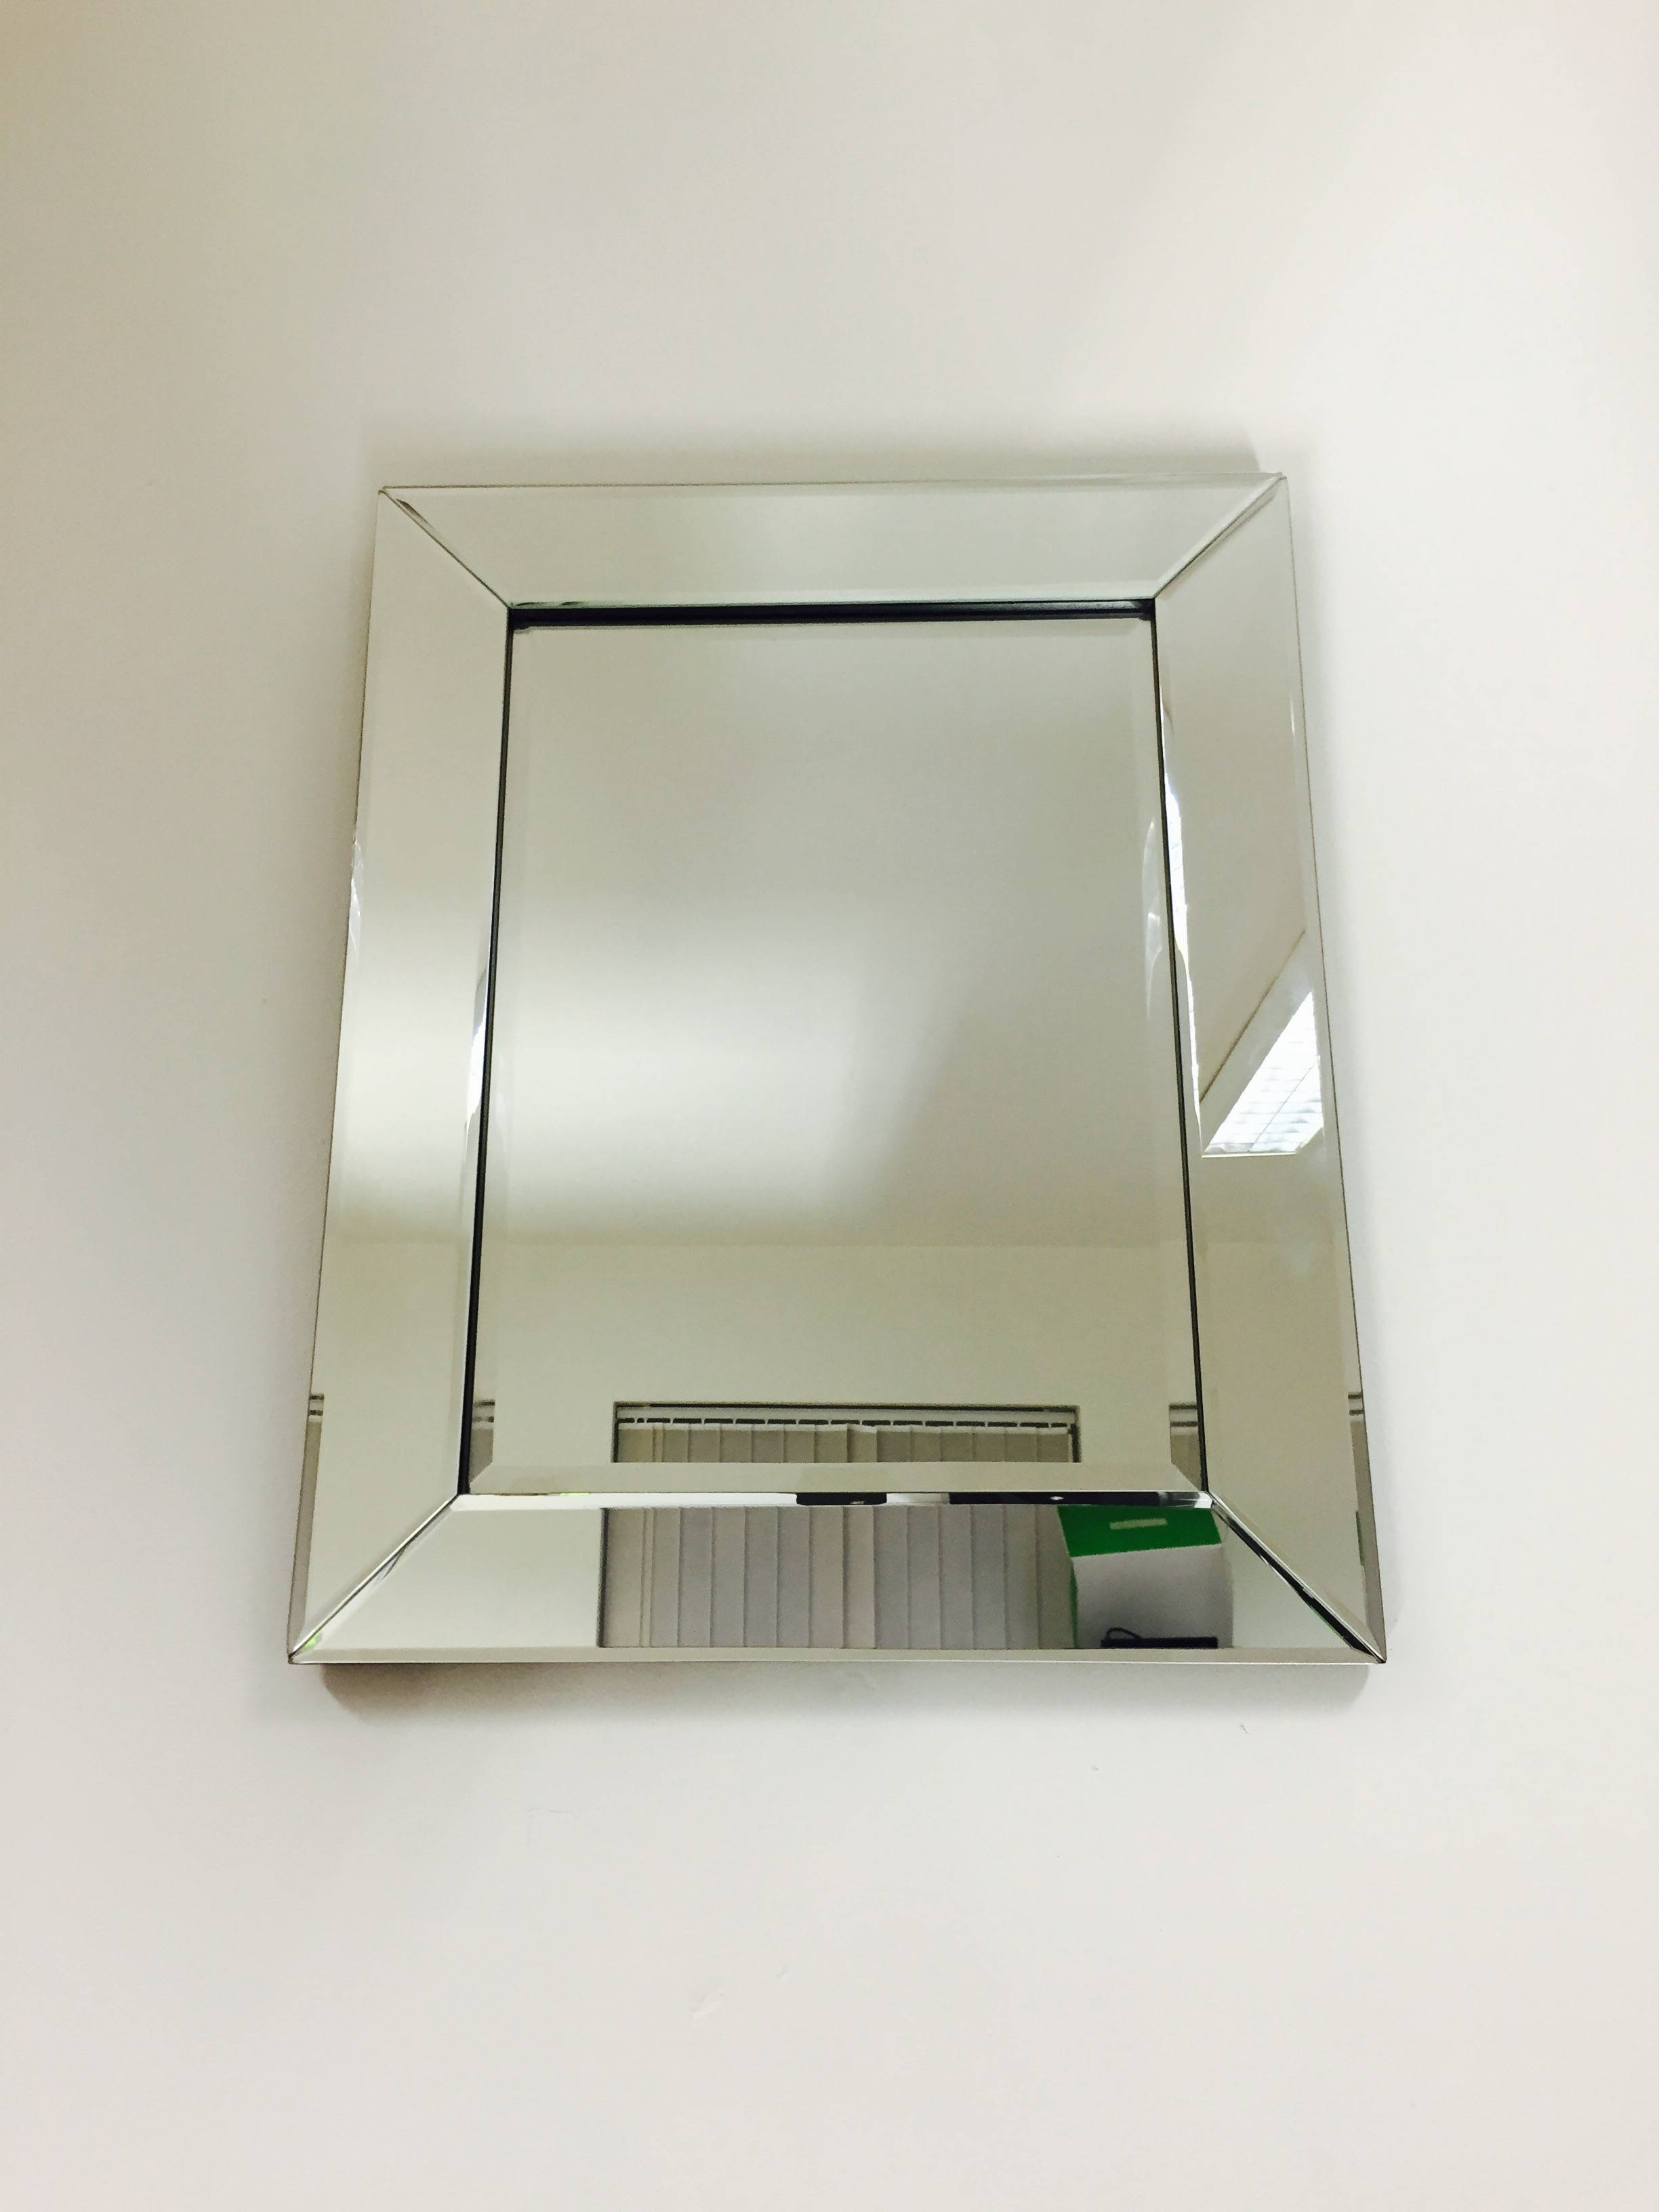 Prs Group Uk | Venetian Bevelled Wall Mirror 50Cm X 40Cm intended for Bevelled Wall Mirrors (Image 22 of 25)